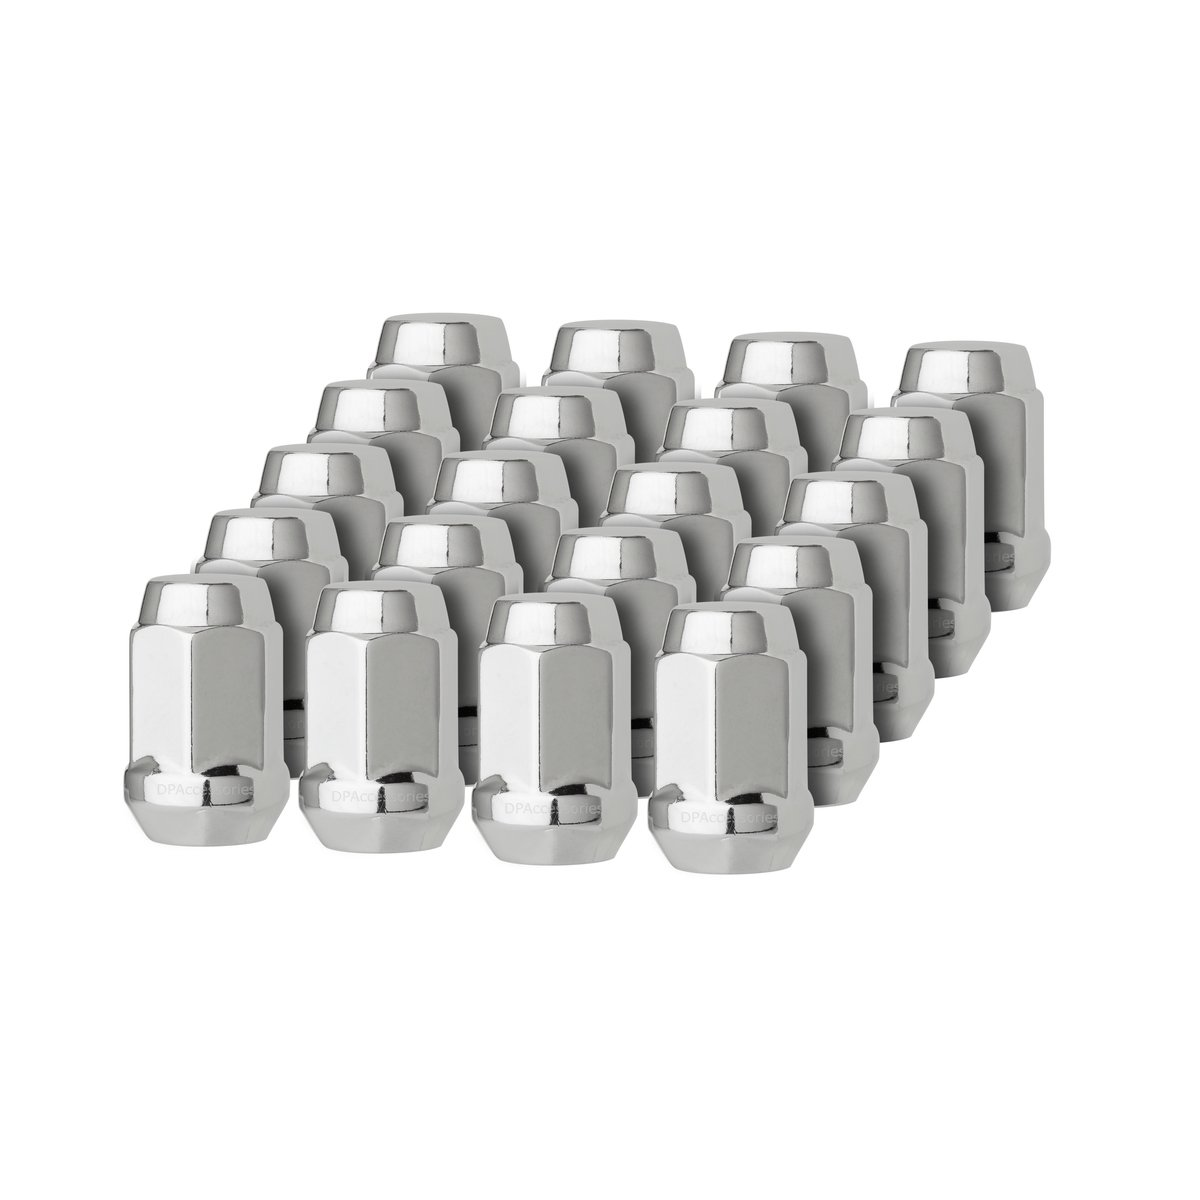 DPAccessories LCB3B6HC-CH04020 20 Chrome 12x1.5 Closed End Bulge Acorn Lug Nuts - Cone Seat - 19mm Hex Wheel Lug Nut